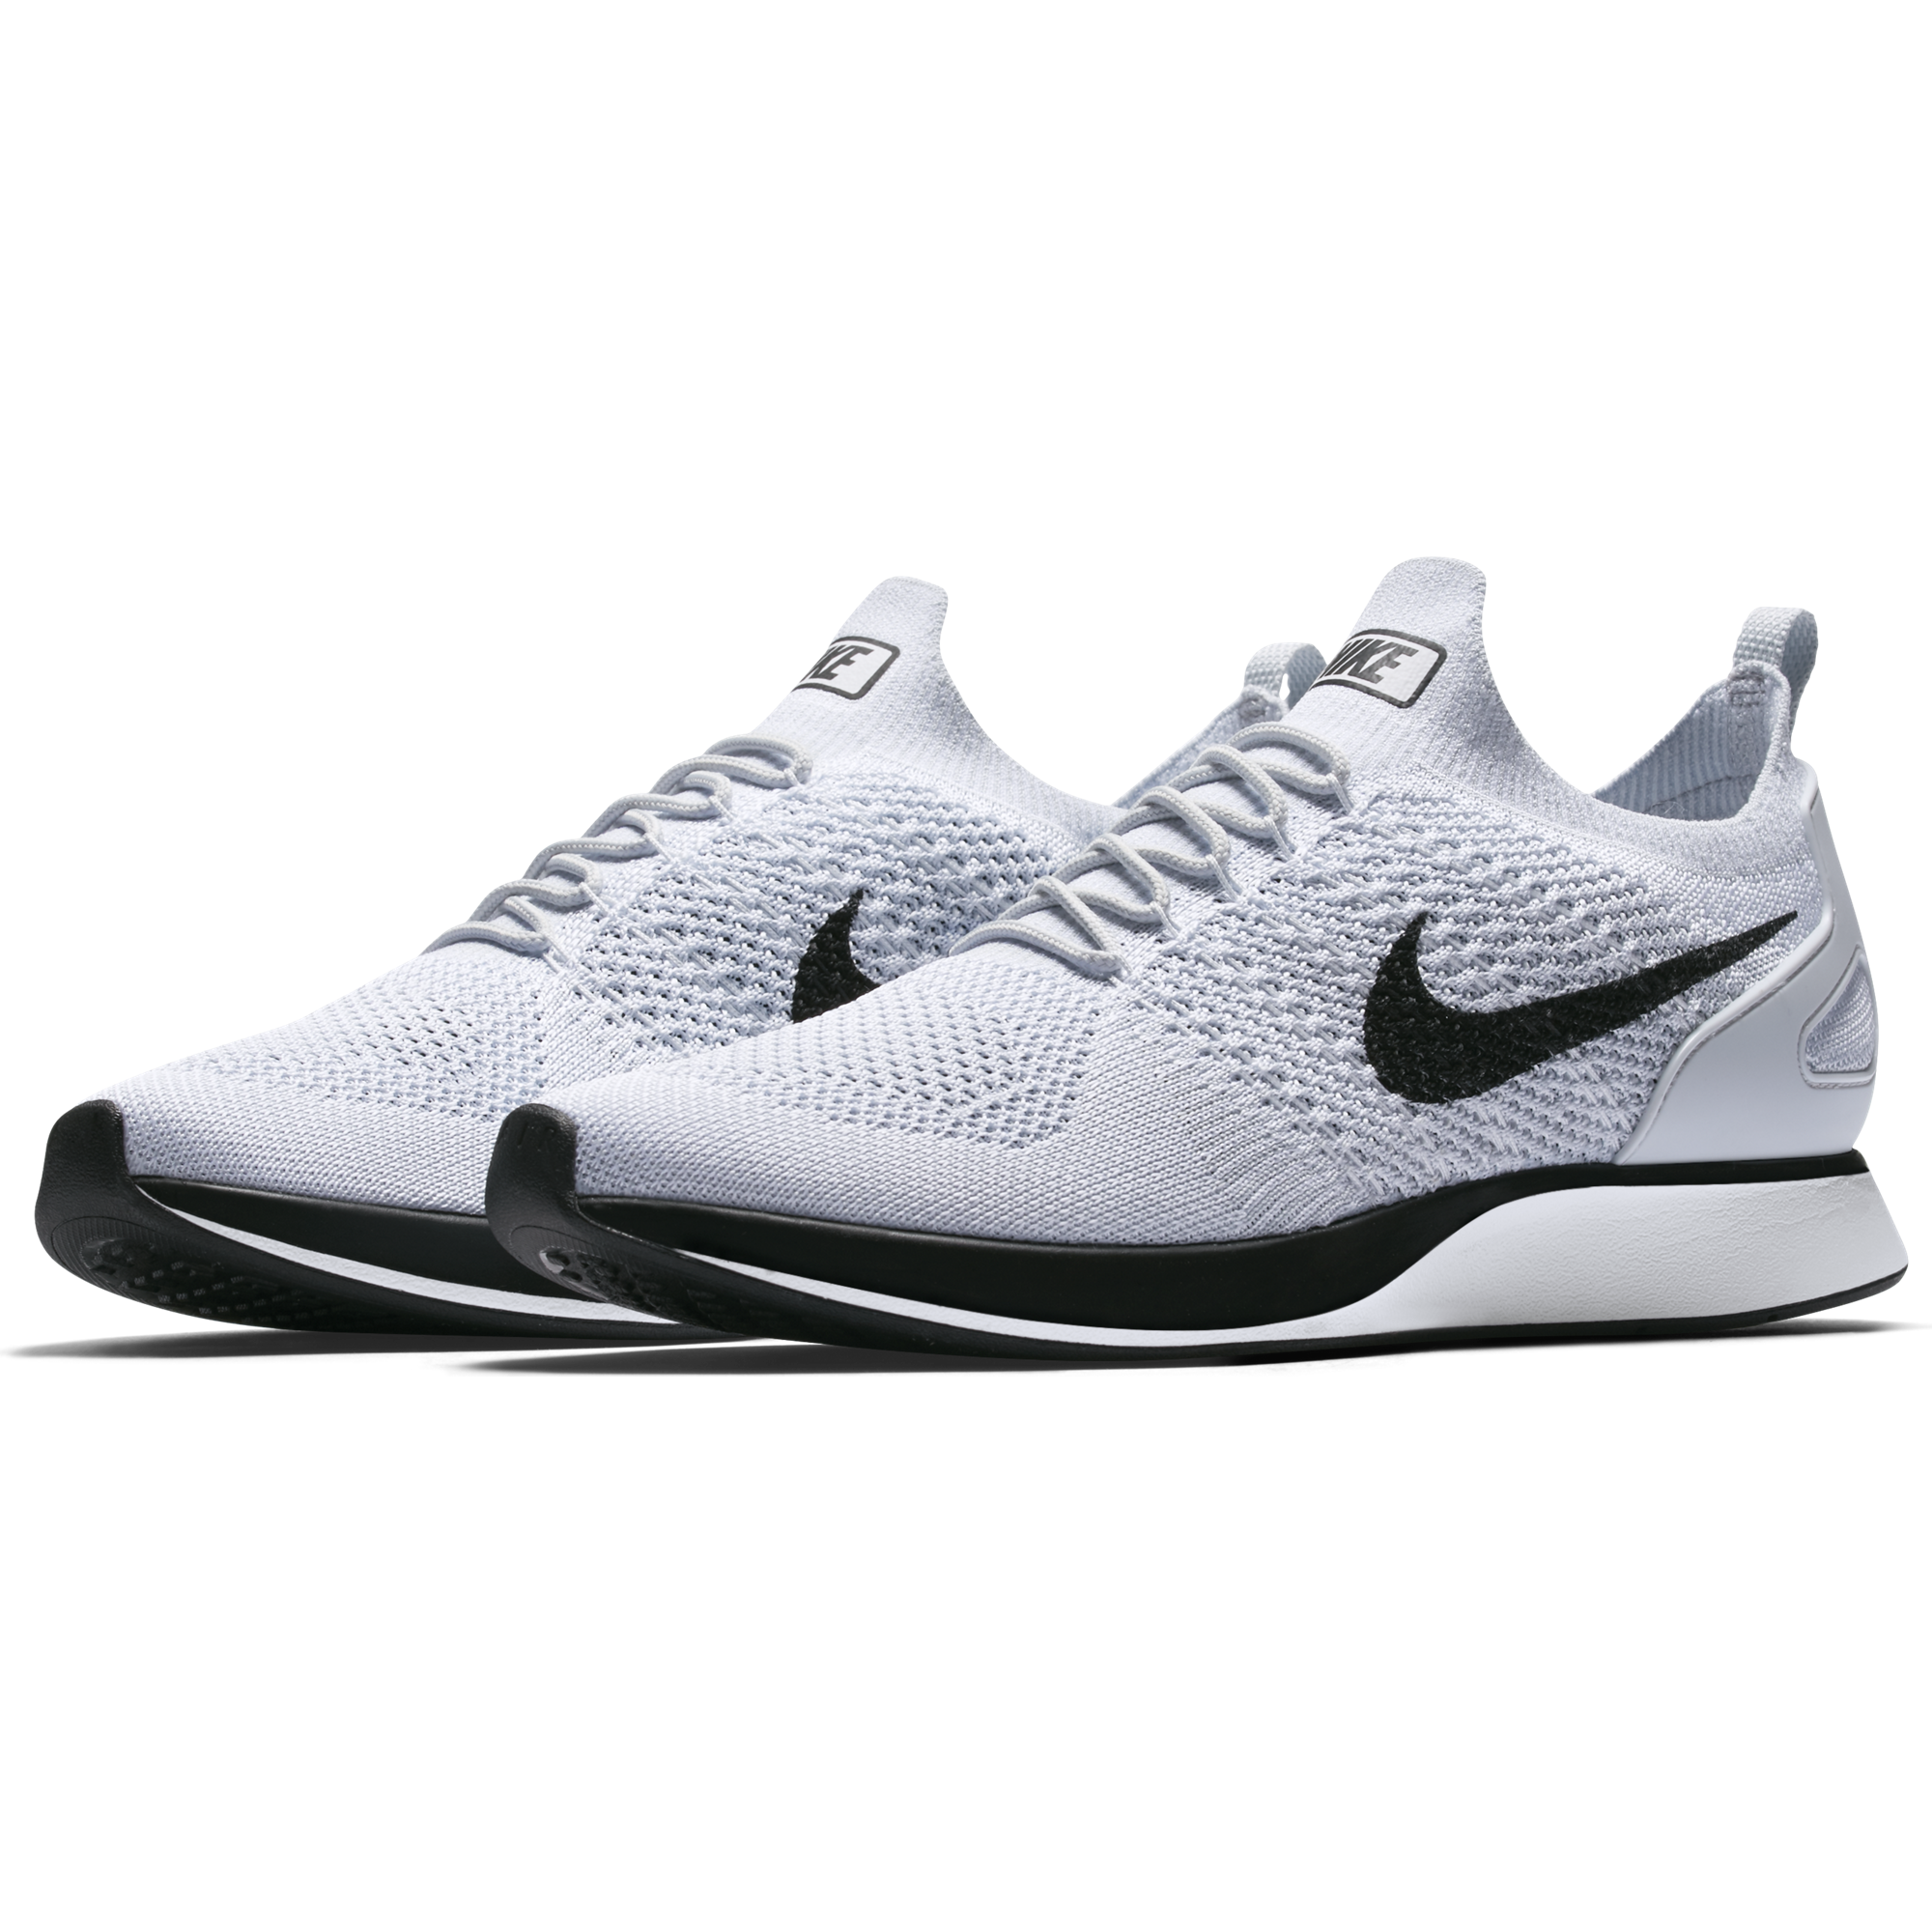 6118032c16a46 Nike Air Zoom Mariah Flyknit Racer - Pure Platinum White in 2019 ...